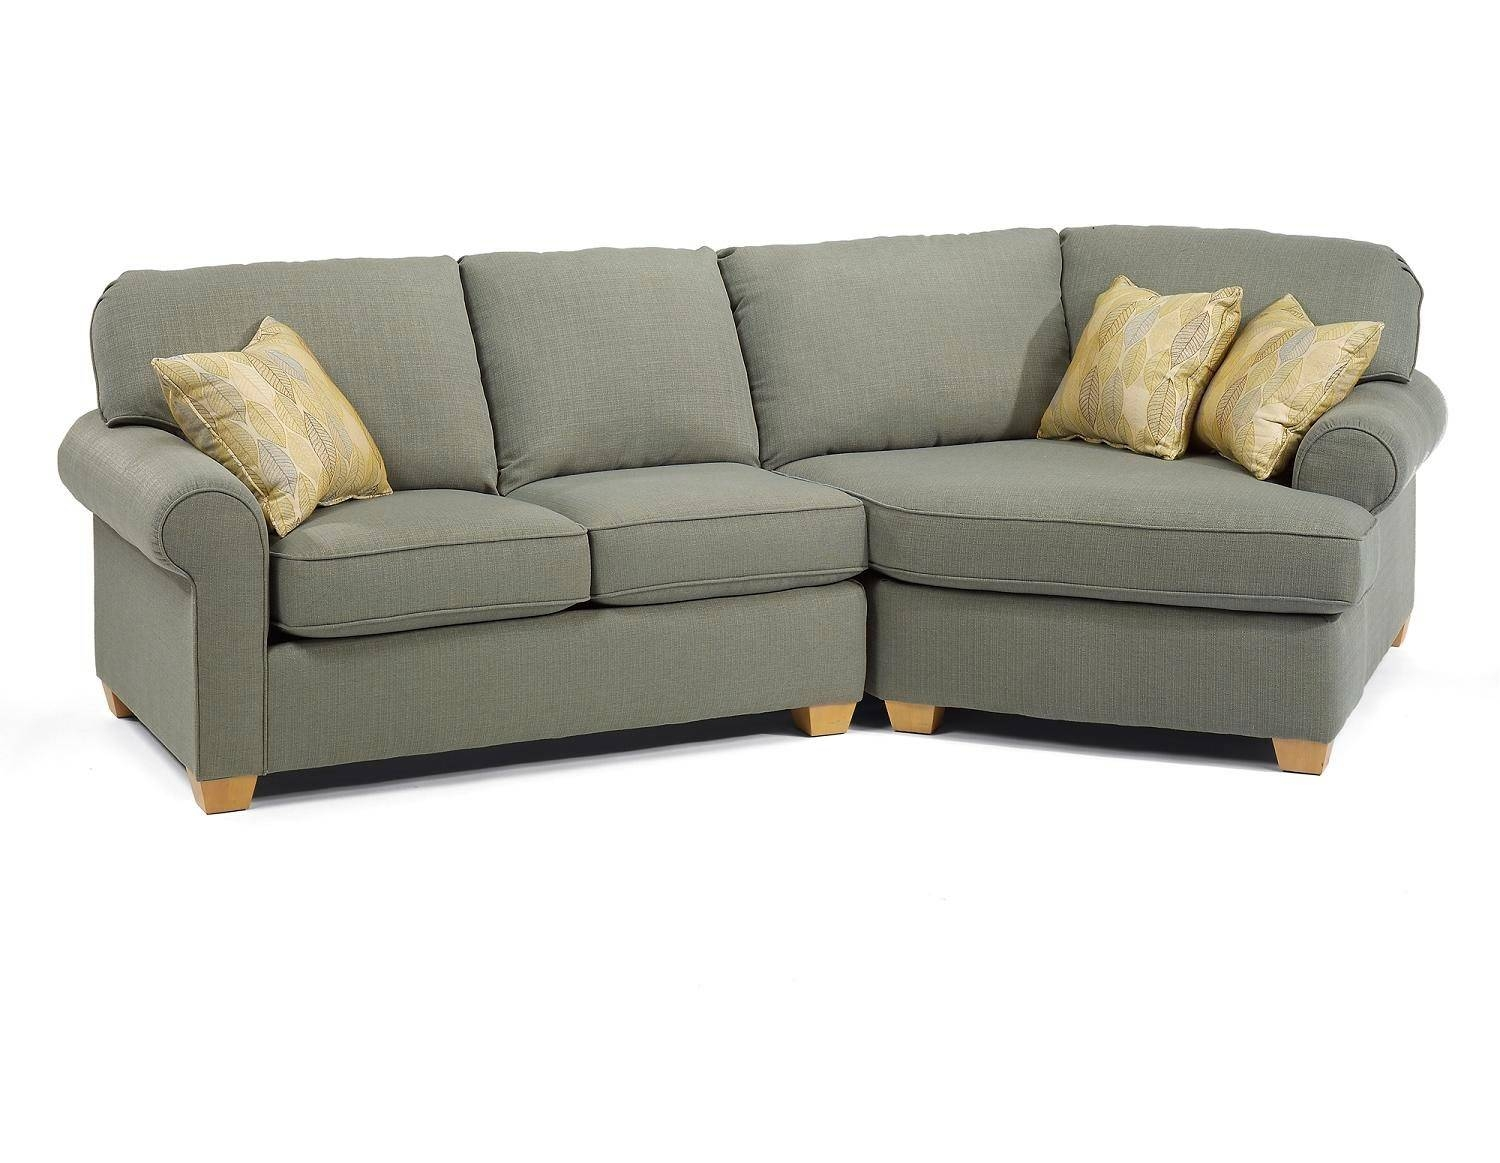 Angled Sectional Sofa Sectional Sofas Couches Ikea Home Decorating regarding Angled Sofa Sectional (Image 7 of 30)